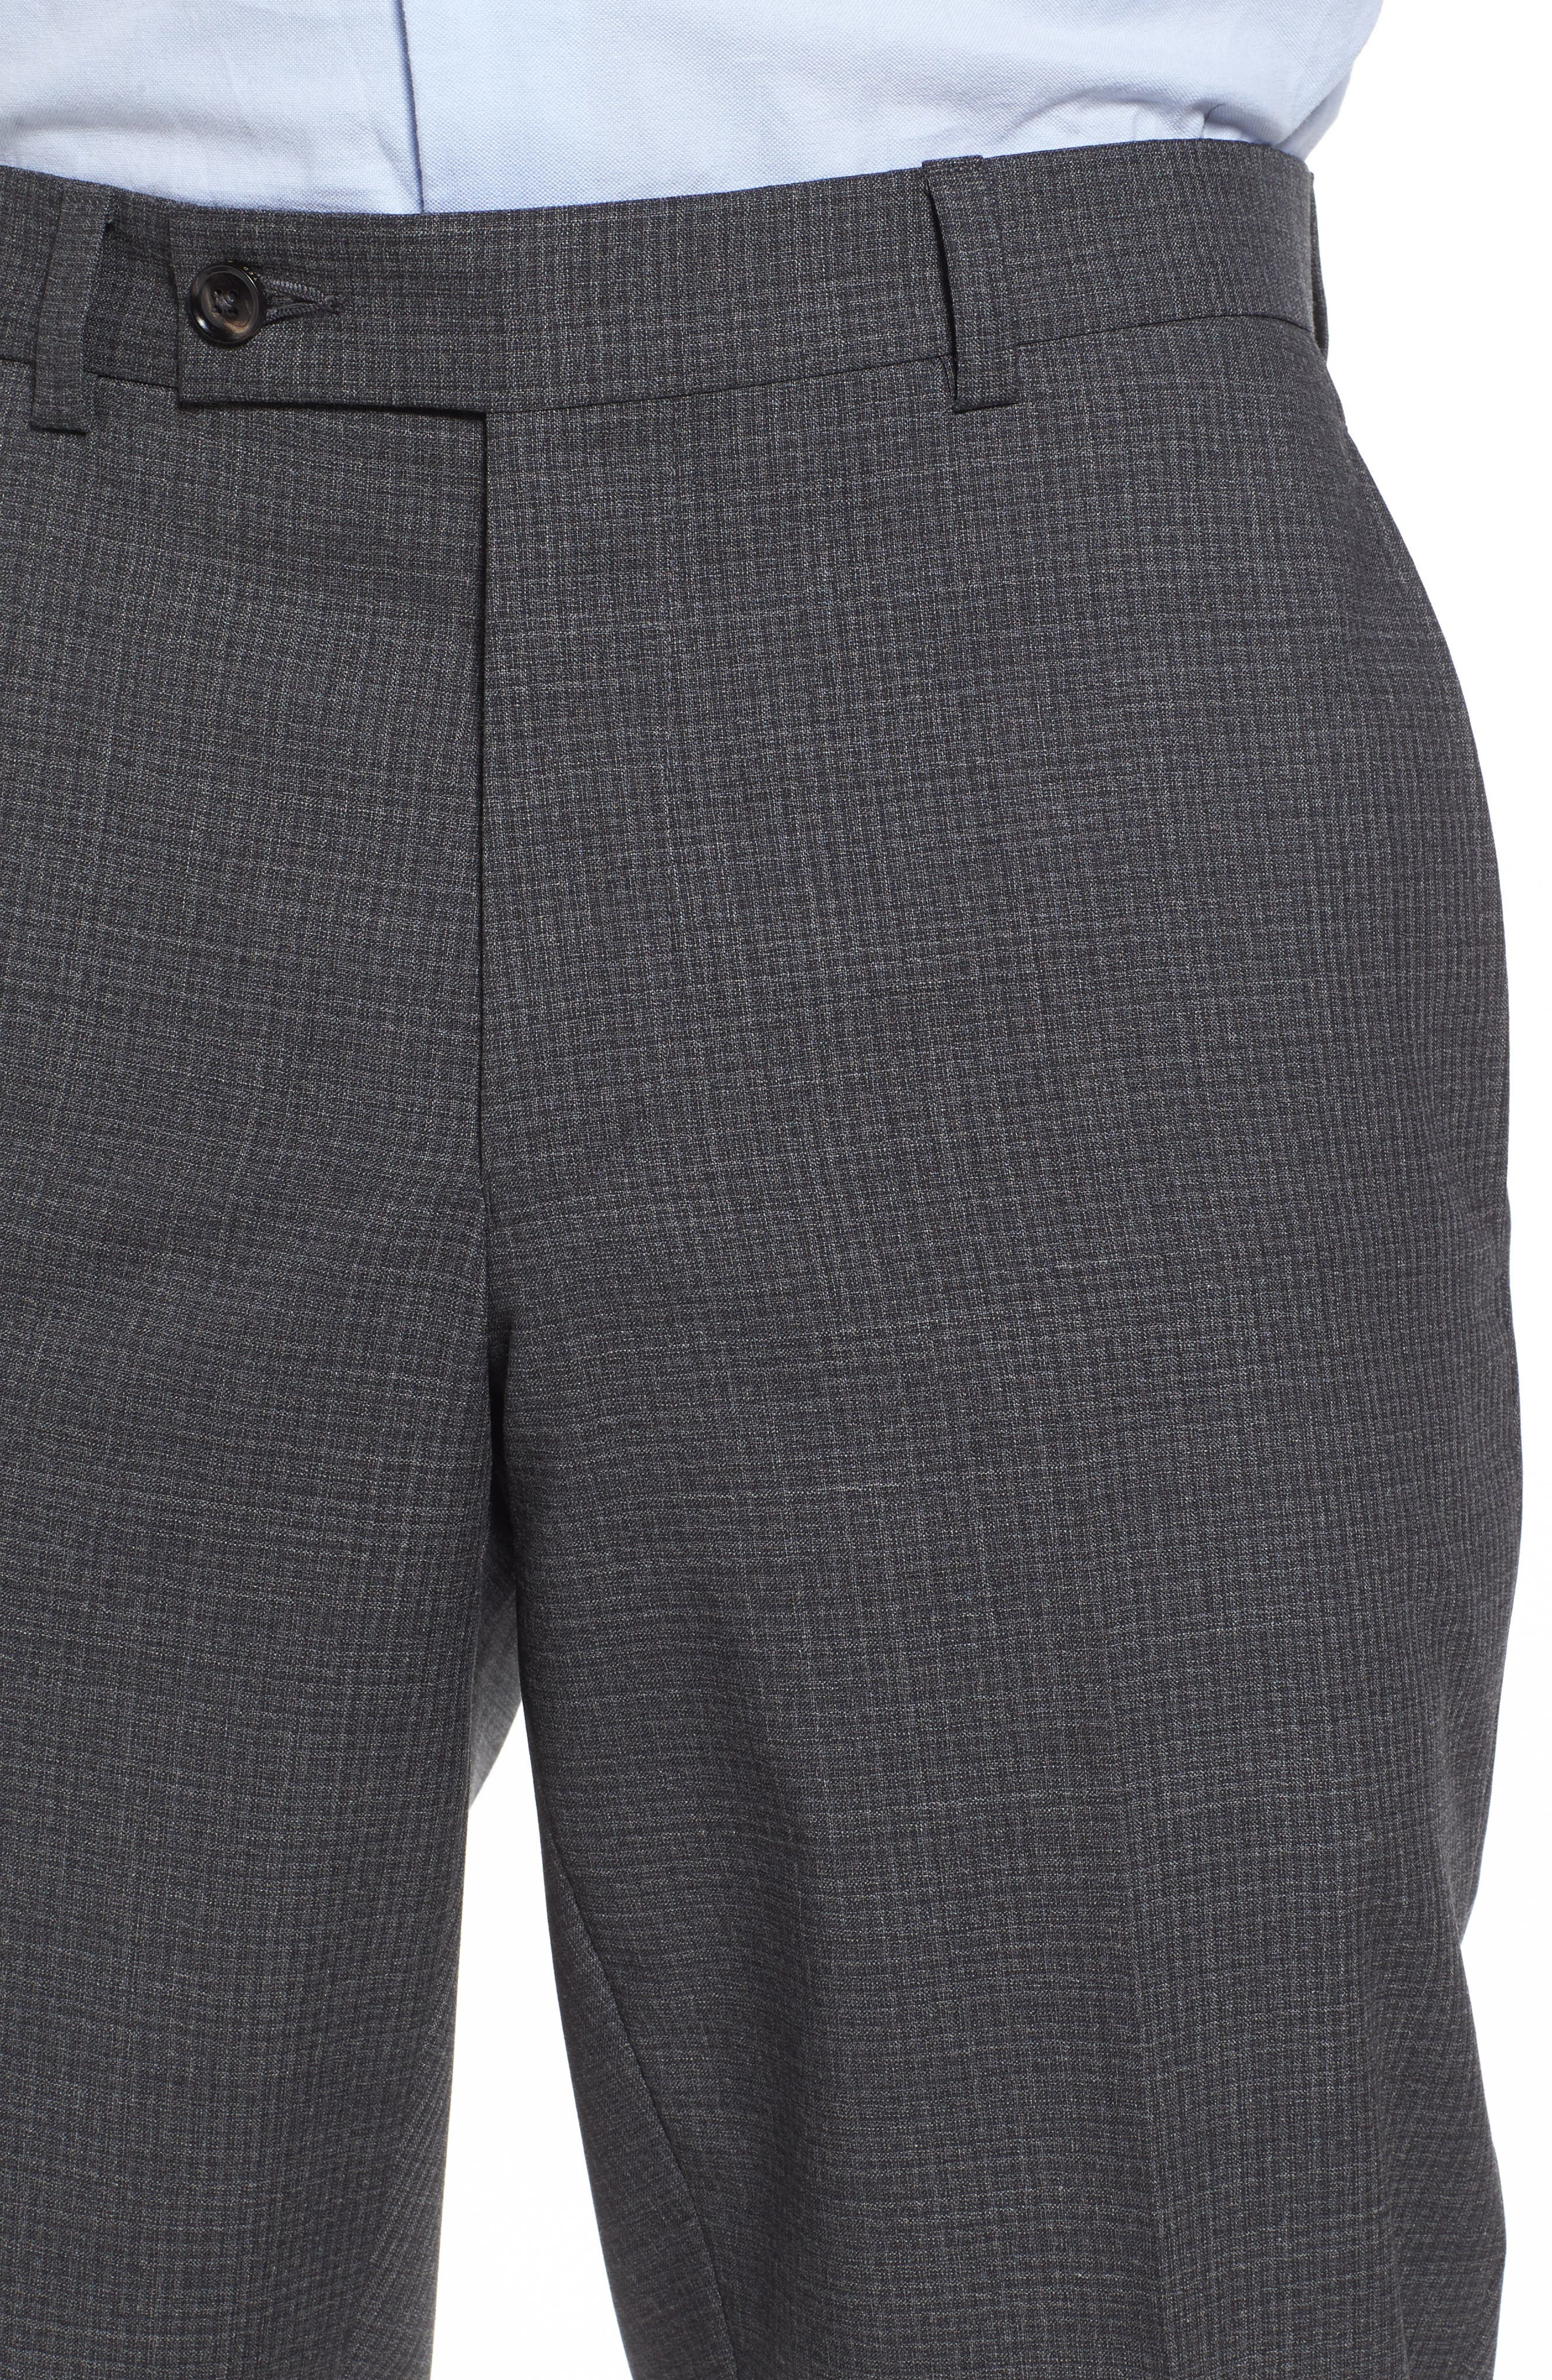 Flat Front Check Wool Trousers,                             Alternate thumbnail 4, color,                             Grey